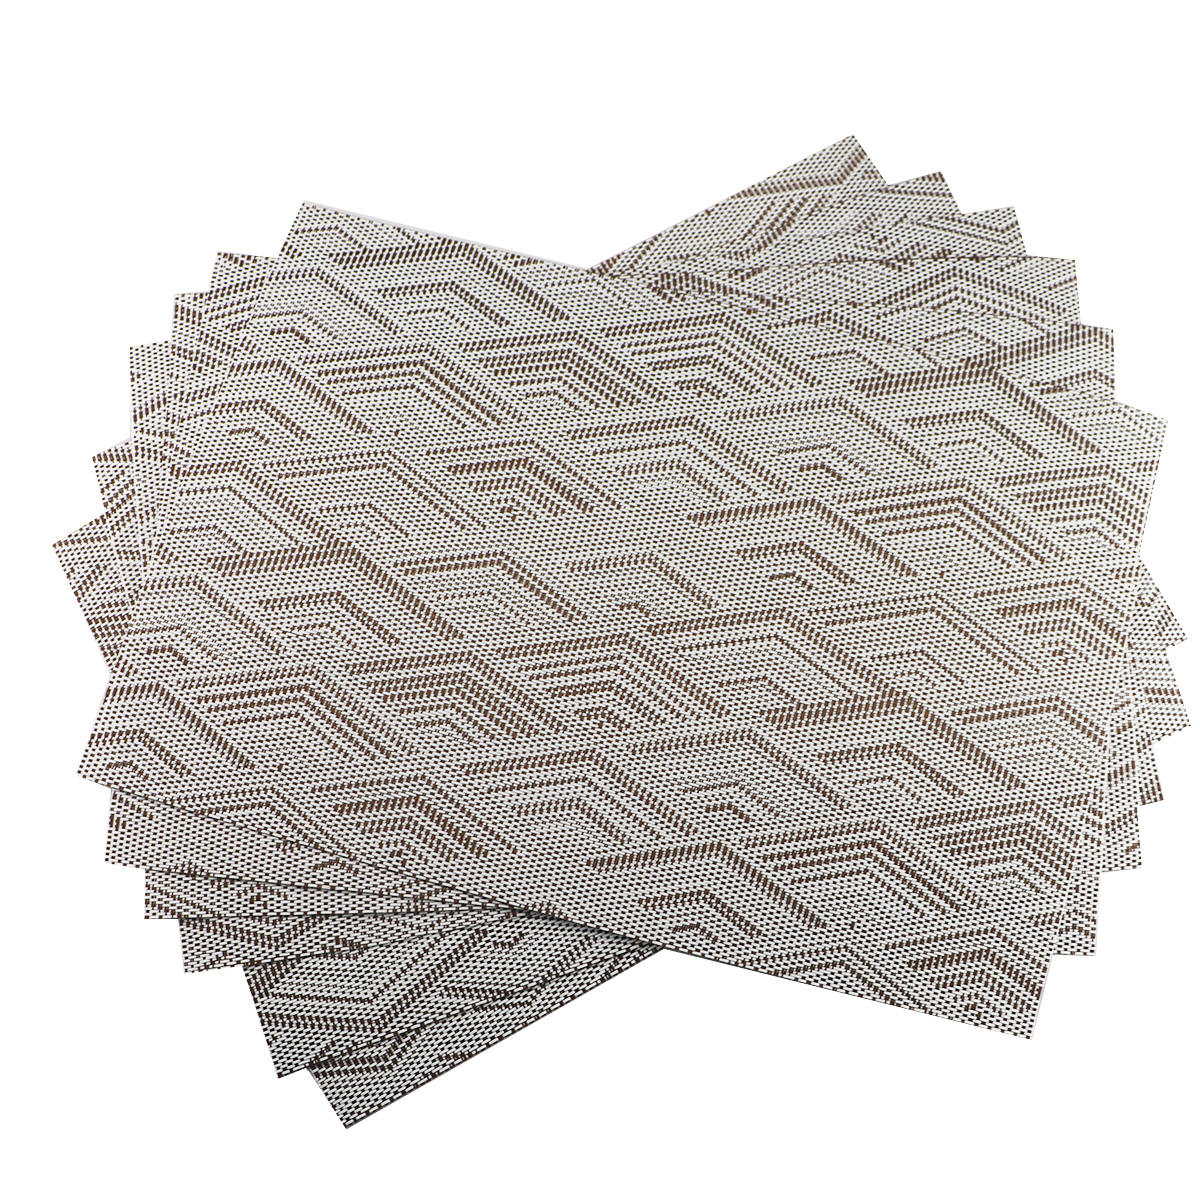 Details About Coffee Table Placemats Set Of 6 Non Slip Washable Pvc Heat Resistant Mats